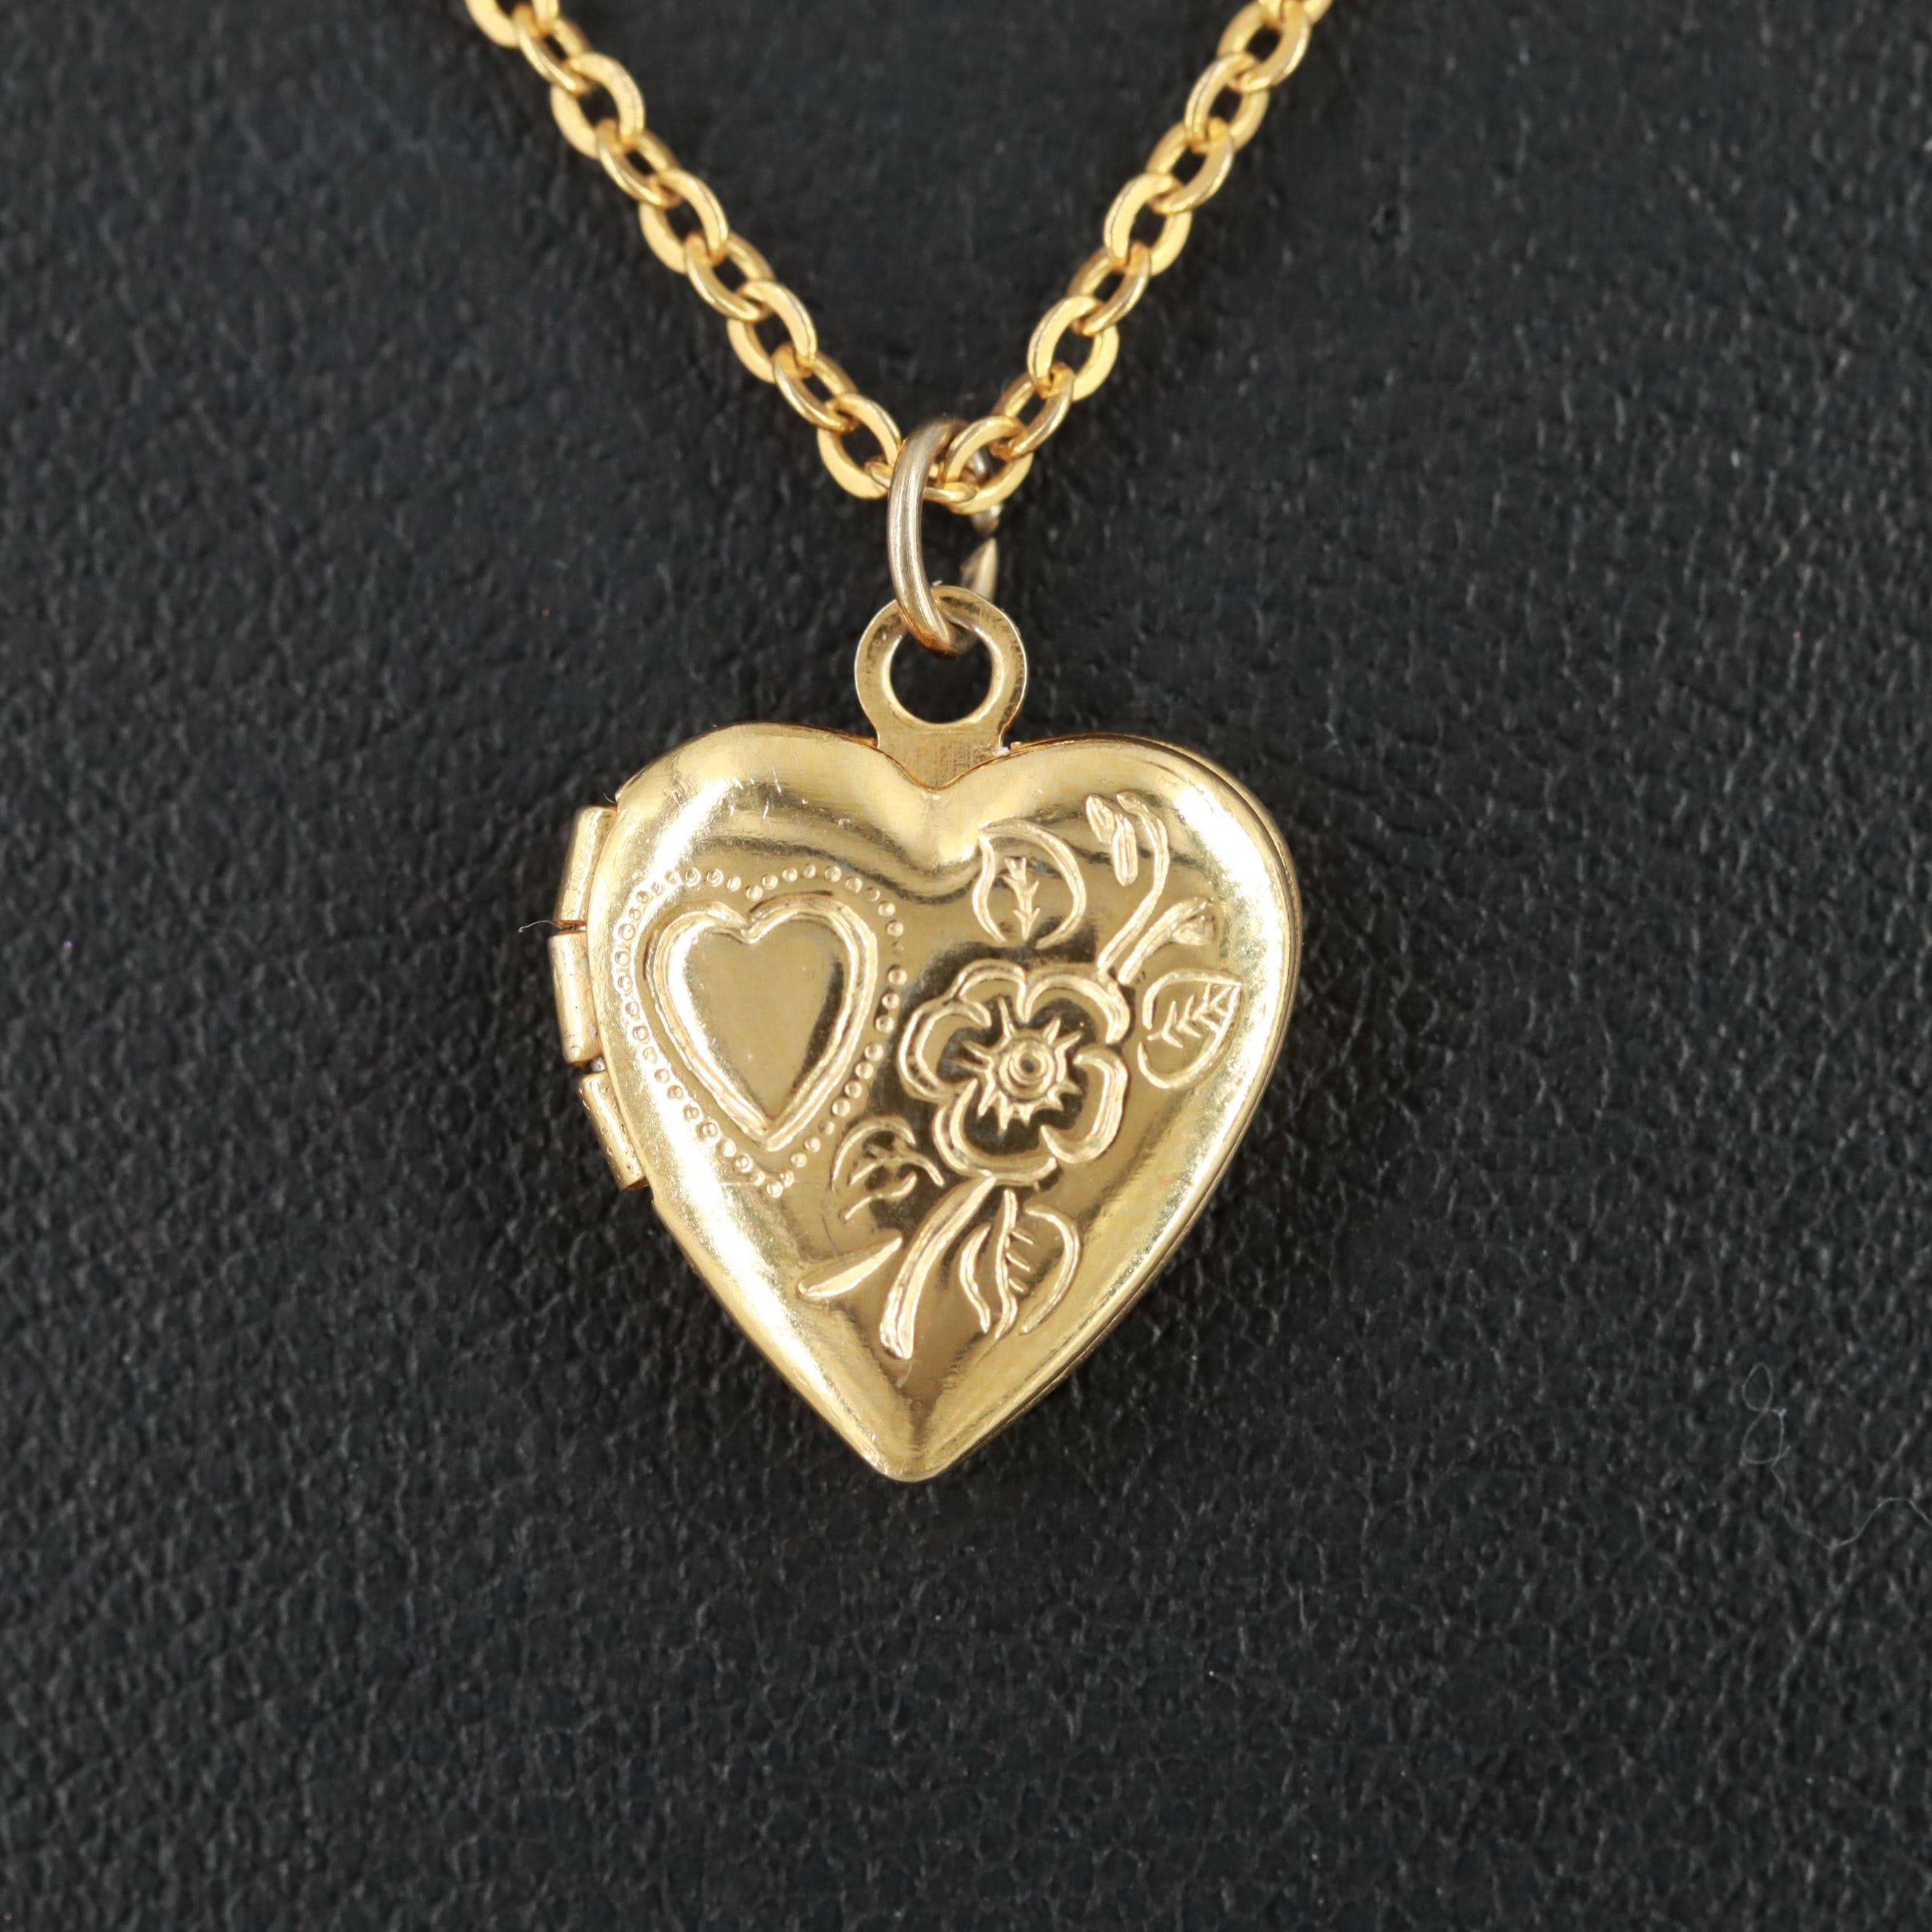 Gold Tone Heart Locket Pendant Necklace